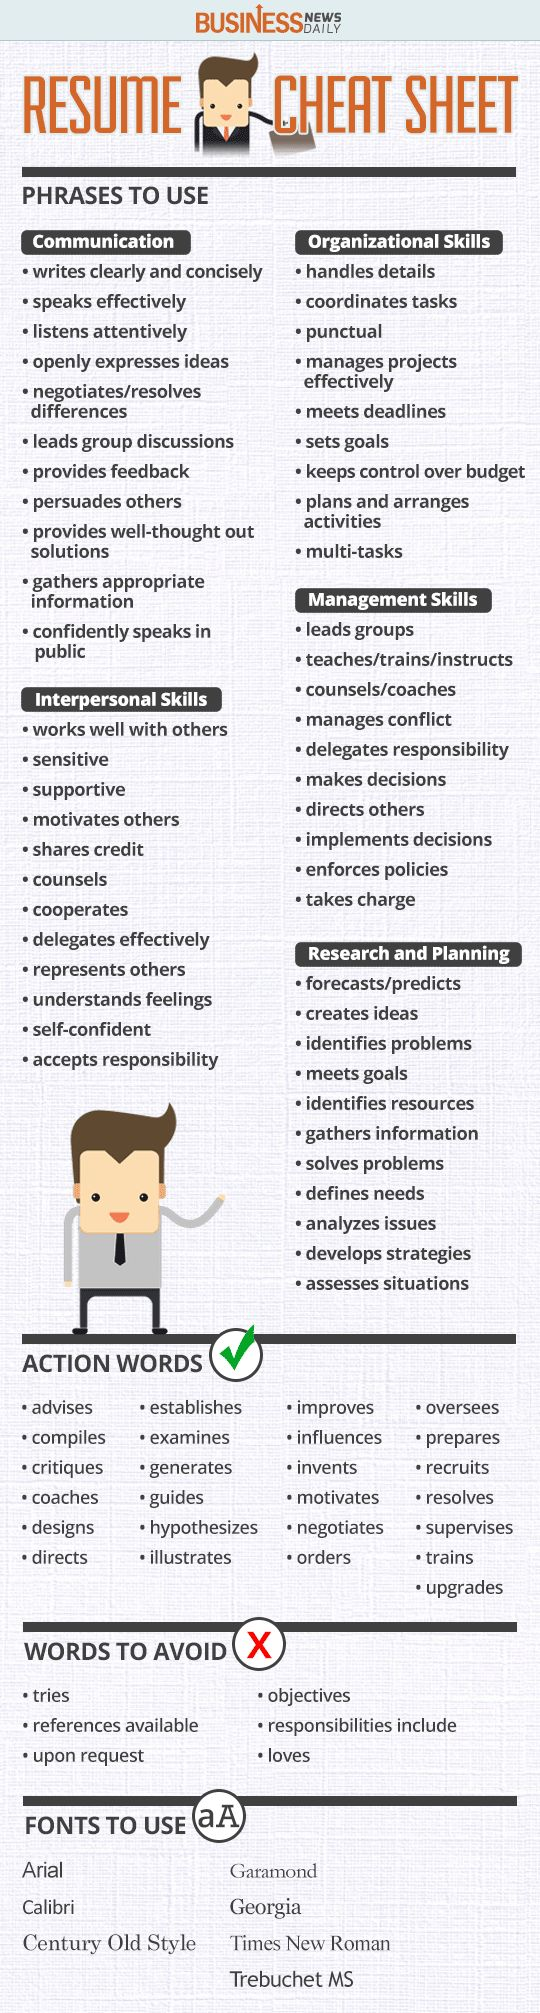 Opposenewapstandardsus  Unusual  Ideas About Resume On Pinterest  Cv Format Resume Cv And  With Handsome Resume Cheat Sheet Infographic Andrews Almost Done With A Complete Unit On Employment Which With Beautiful Picture On Resume Also Graphic Designer Resumes In Addition Copywriter Resume And Resume For Career Change As Well As Microsoft Resume Template Additionally Resume Thesaurus From Pinterestcom With Opposenewapstandardsus  Handsome  Ideas About Resume On Pinterest  Cv Format Resume Cv And  With Beautiful Resume Cheat Sheet Infographic Andrews Almost Done With A Complete Unit On Employment Which And Unusual Picture On Resume Also Graphic Designer Resumes In Addition Copywriter Resume From Pinterestcom